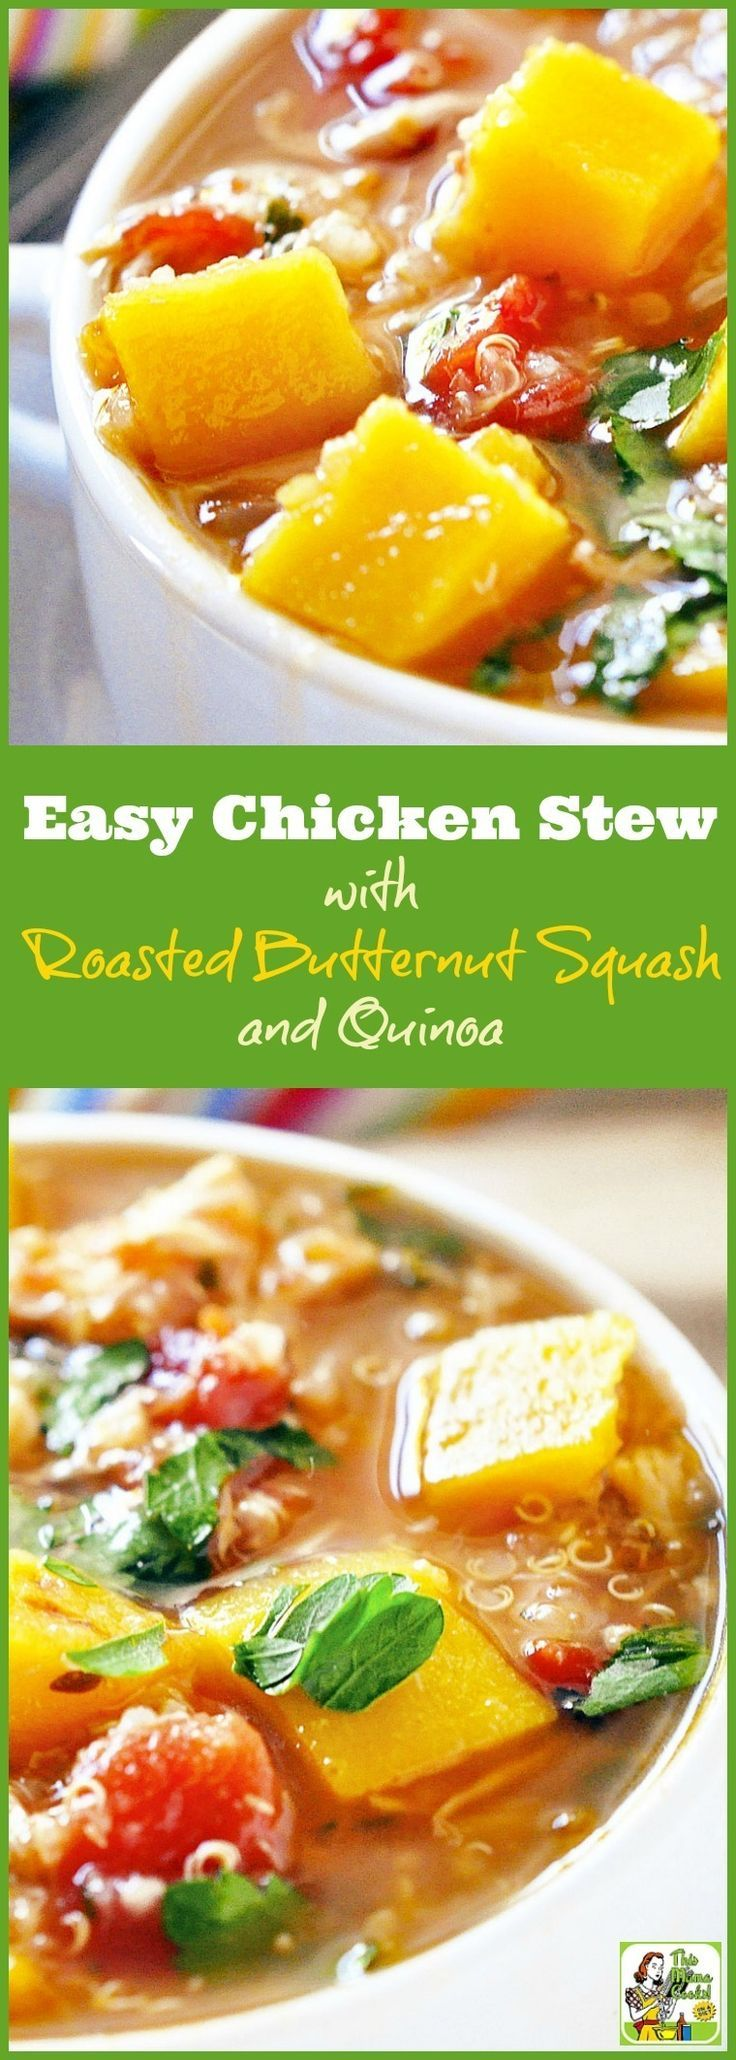 This healthy chicken stew recipe is ideal for dinner or a soup-er bowl party. Click to get the recipe for Easy Chicken Stew with Roasted Butternut Squash and Quinoa. This simple chicken stew recipe is naturally gluten free.